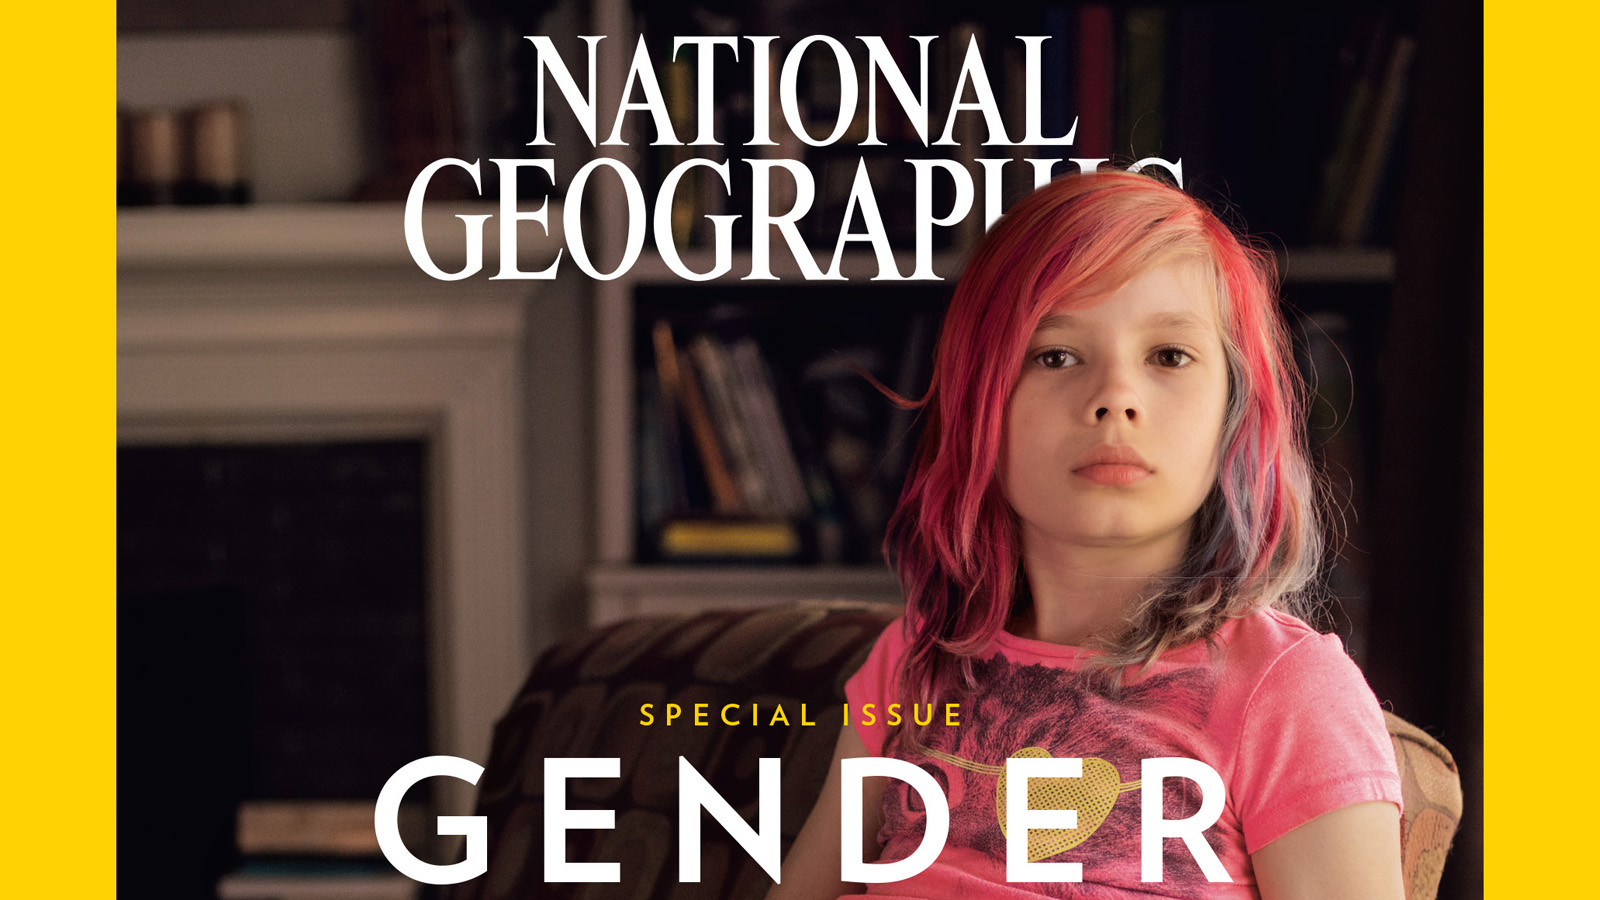 National Geographic Features Young Transgender Girl on Cover